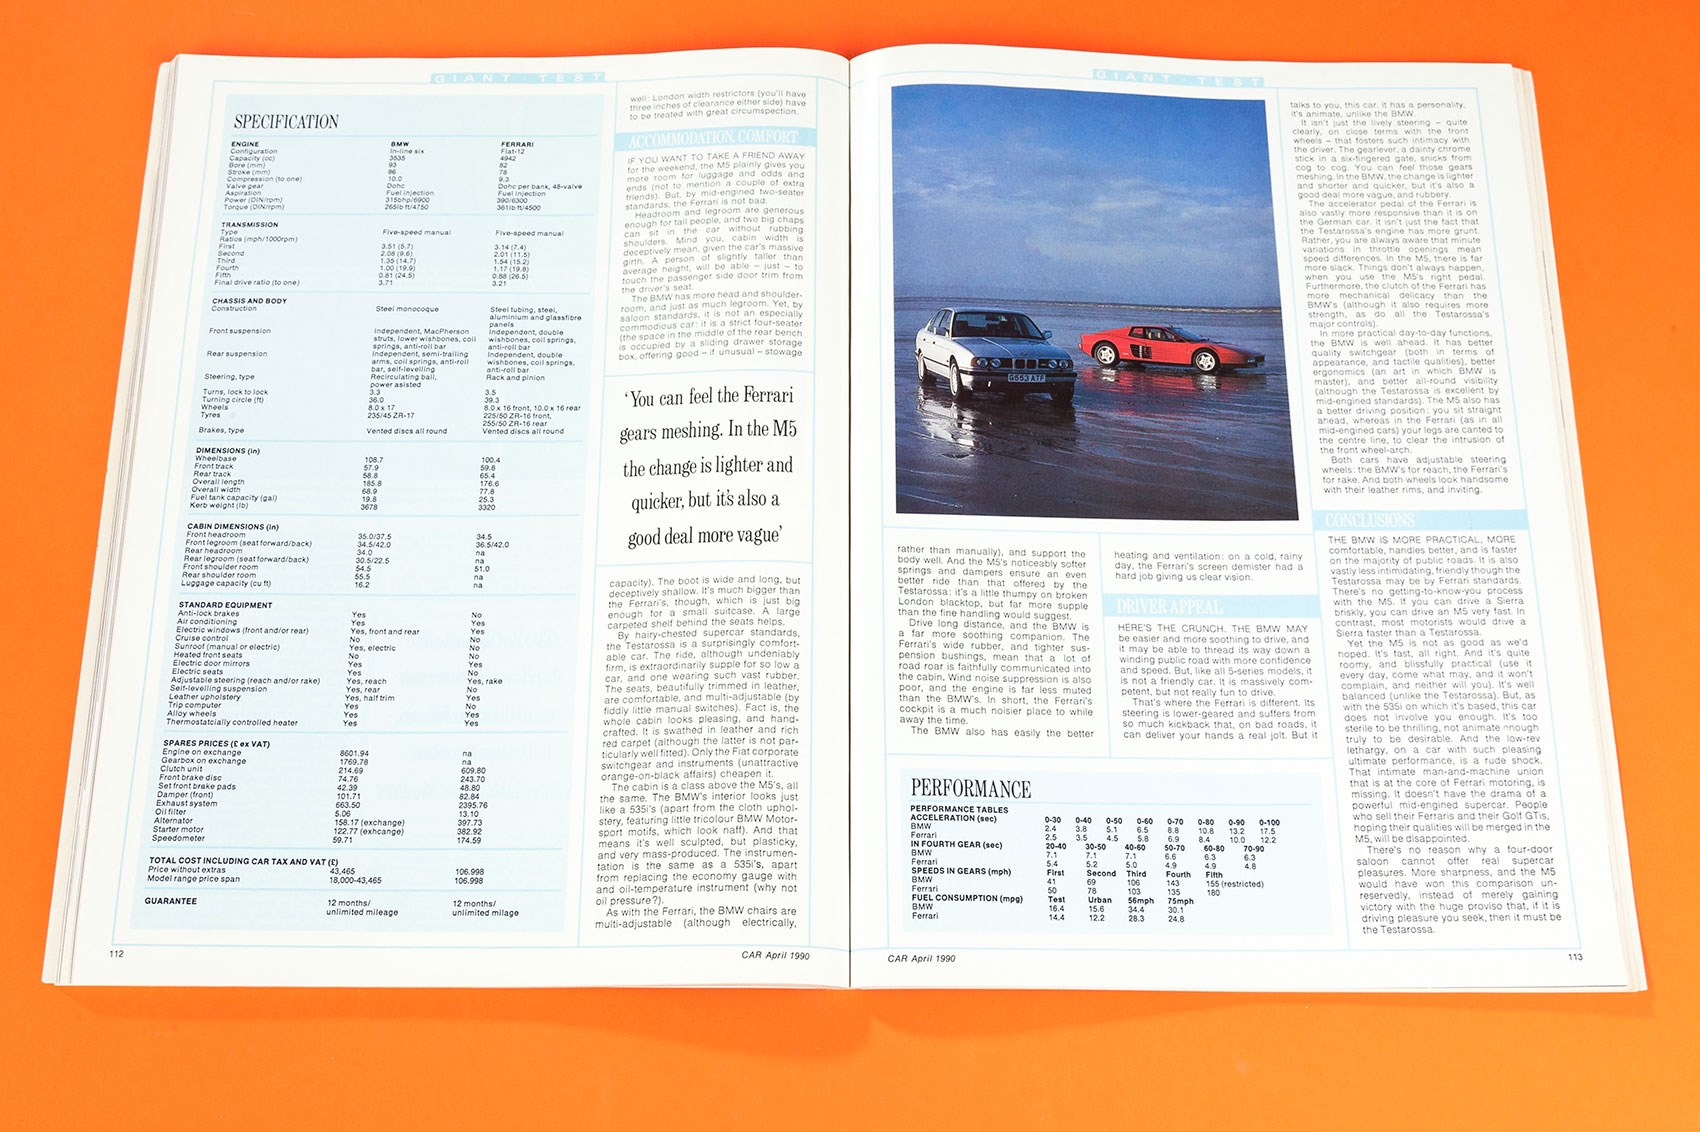 Bmw E34 M5 Vs Ferrari Testarossa Car Archive 1990 Magazine Bentley Continental Gt Fuse Diagram The Is Too Sterile To Be Thrilling Not Animate Enough Truly Desirable